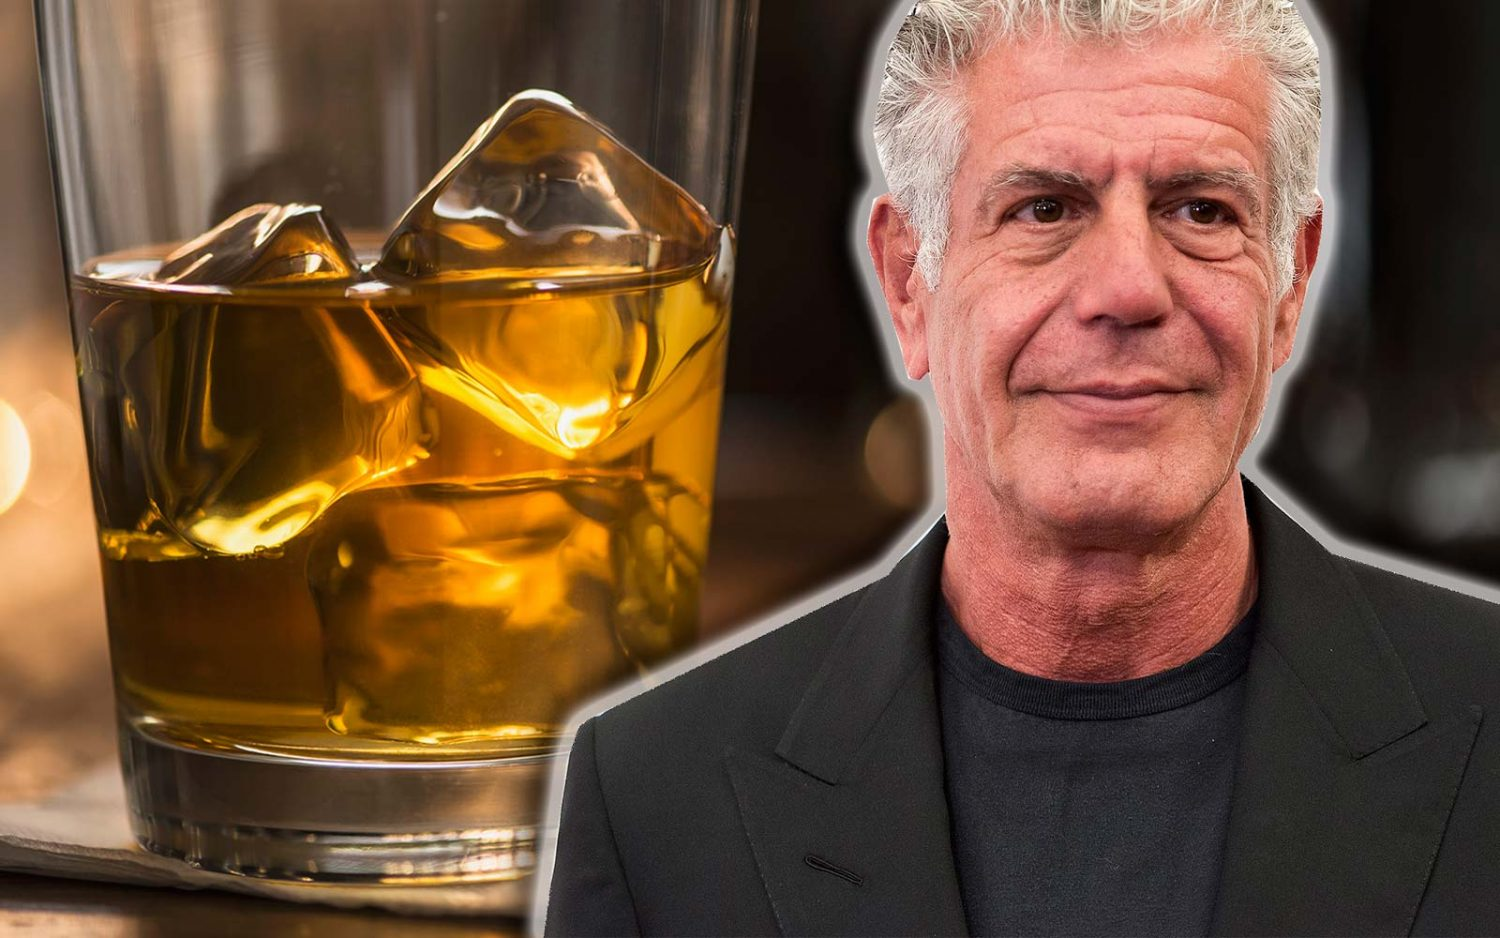 anthony bourdain says this is how you should be drinking whisky